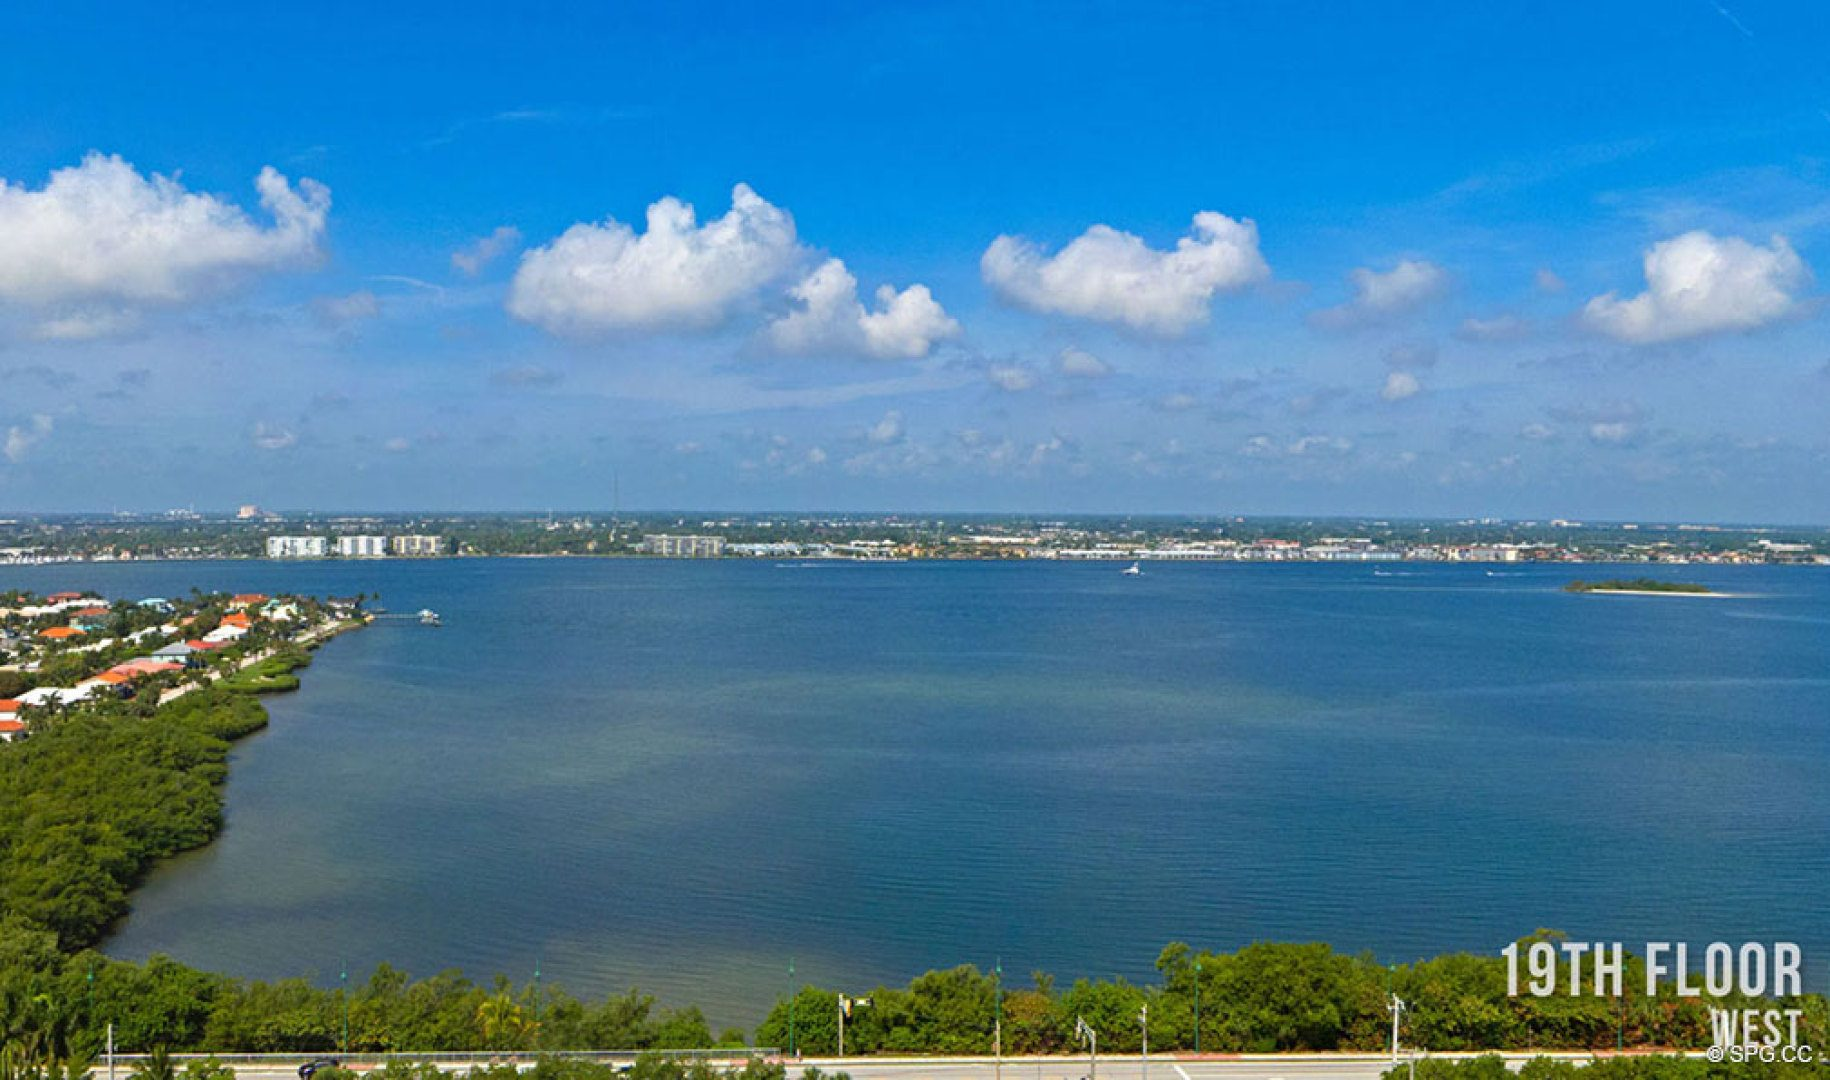 Nineteenth Floor Western Views from 5000 North Ocean, Luxury Oceanfront Condos in Riviera Beach